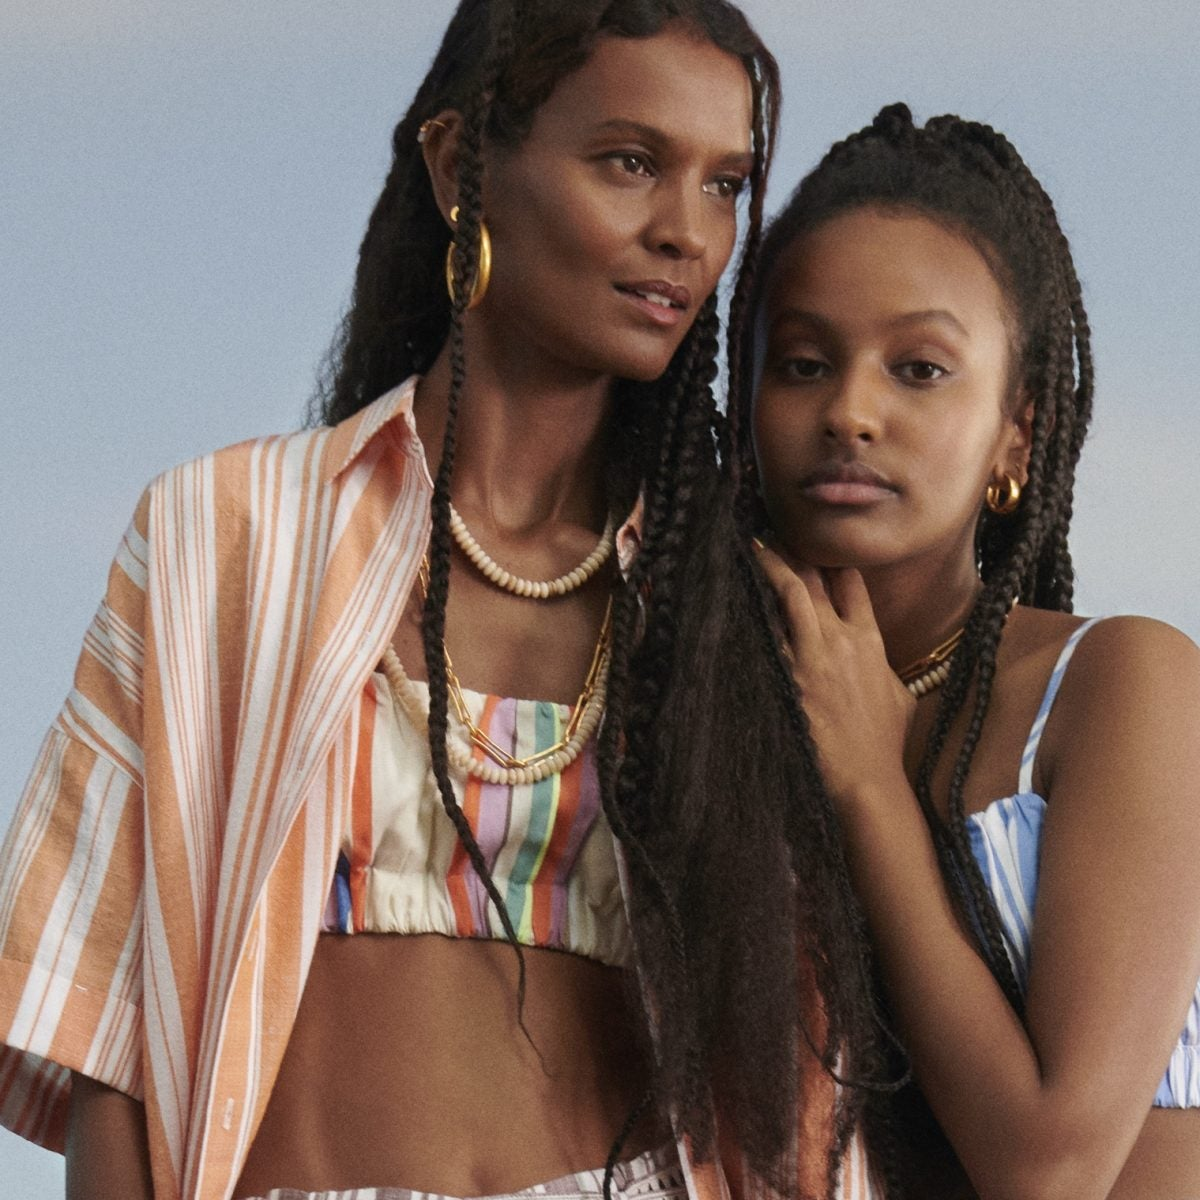 Shop Now: H&M Collaborates With Lemlem To Launch Eco-Friendly Collection